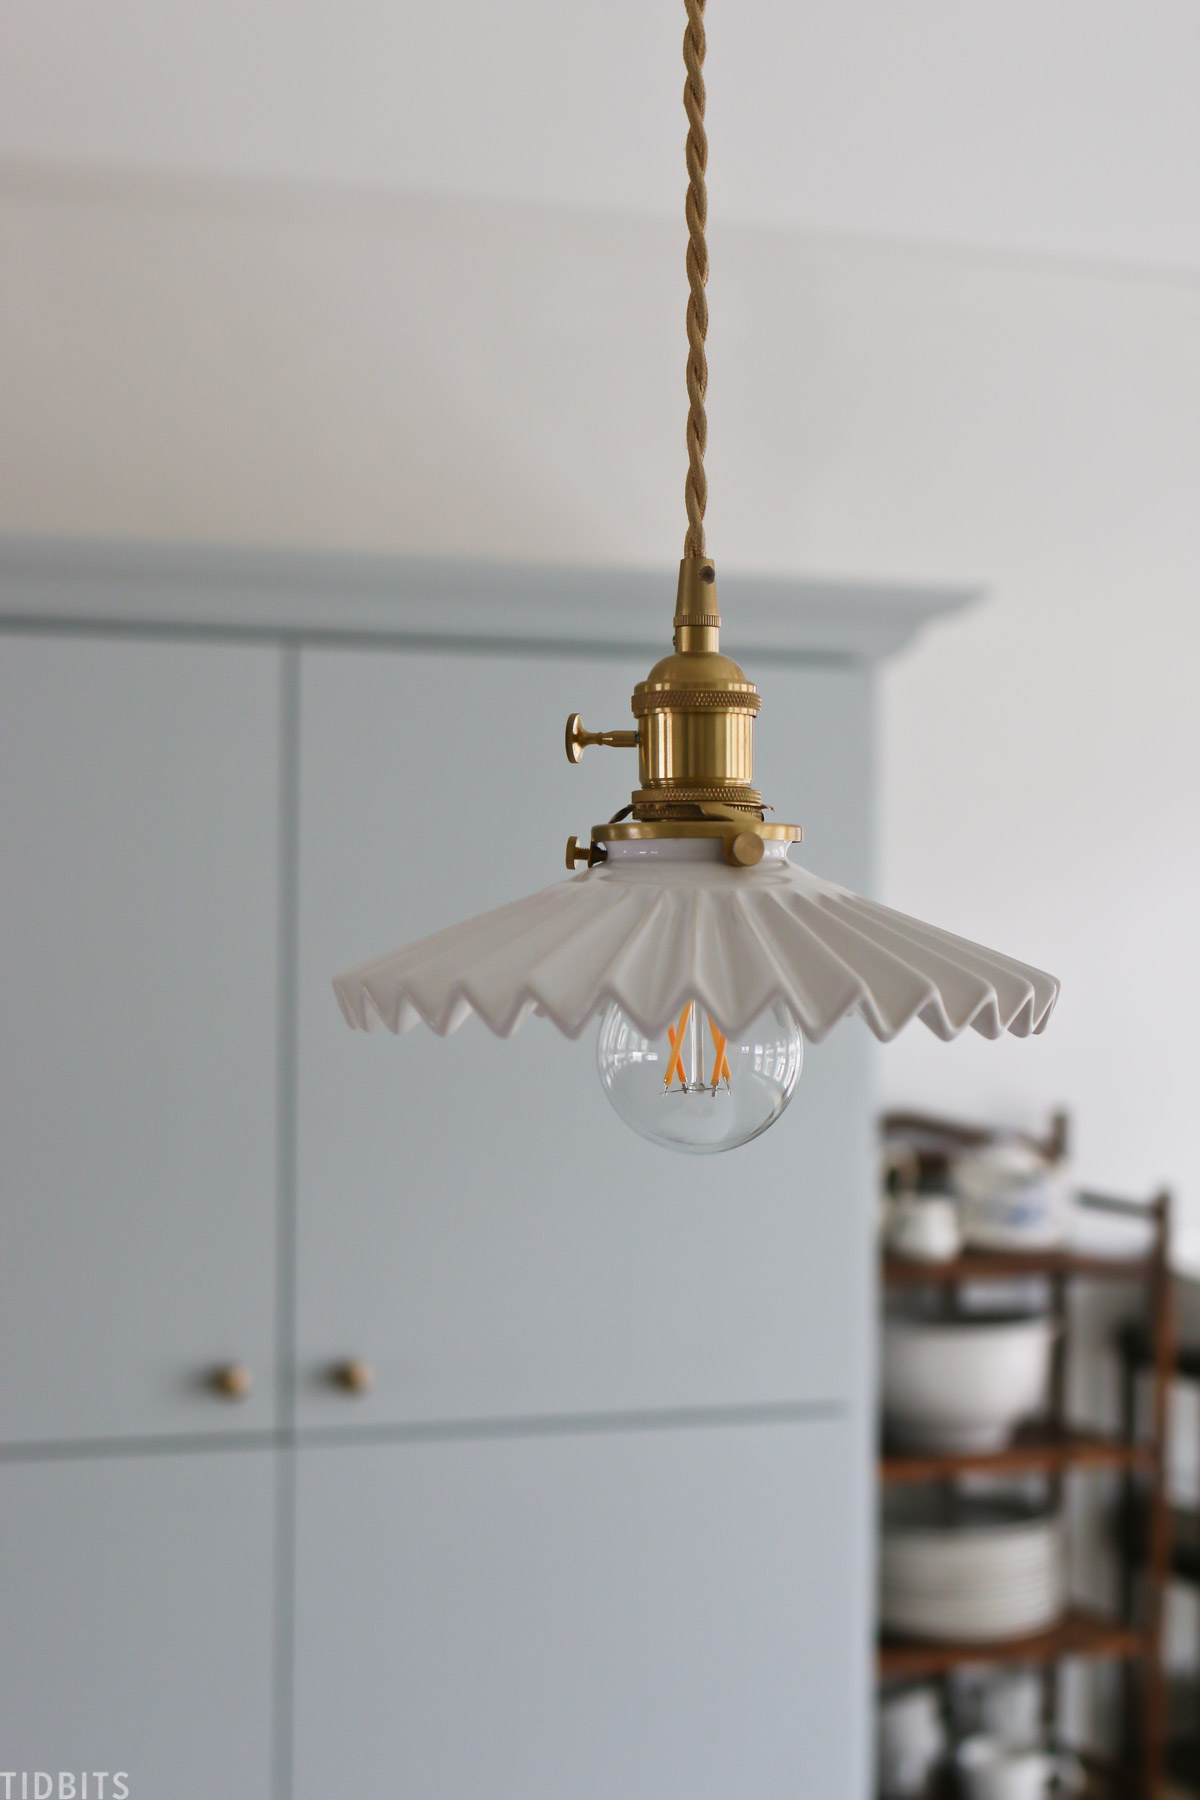 Scalloped light fixture with brass hardware